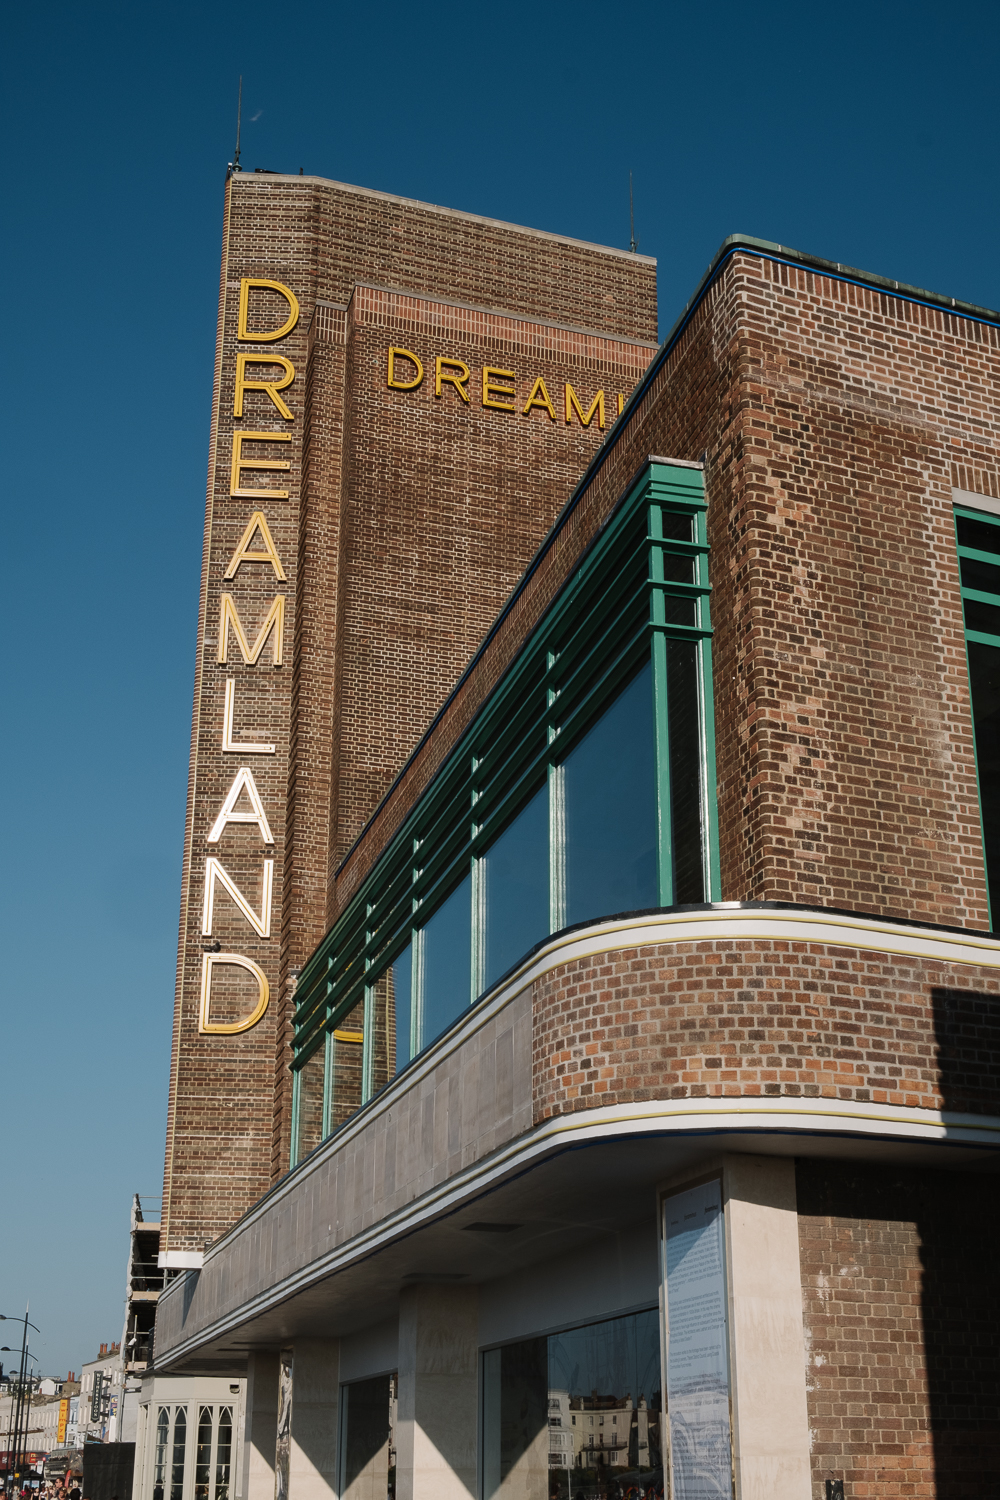 Fully restored cinema on the seafront